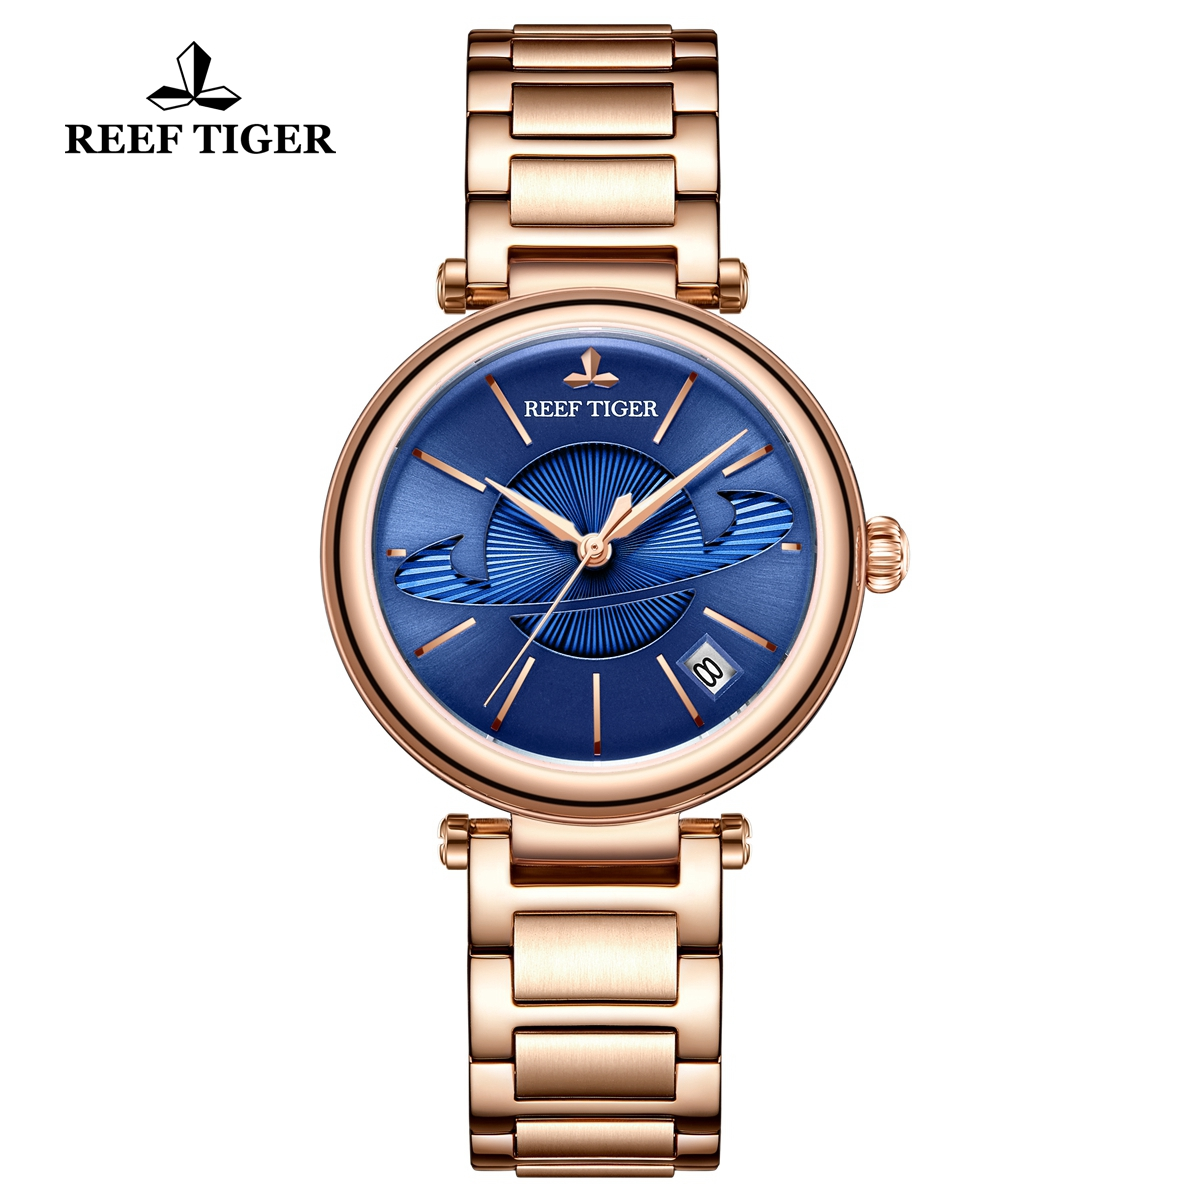 Reef Tiger Love Saturn Fashion Lady Watch Rose Gold Blue Dial Automatic Watch RGA1591-PLP